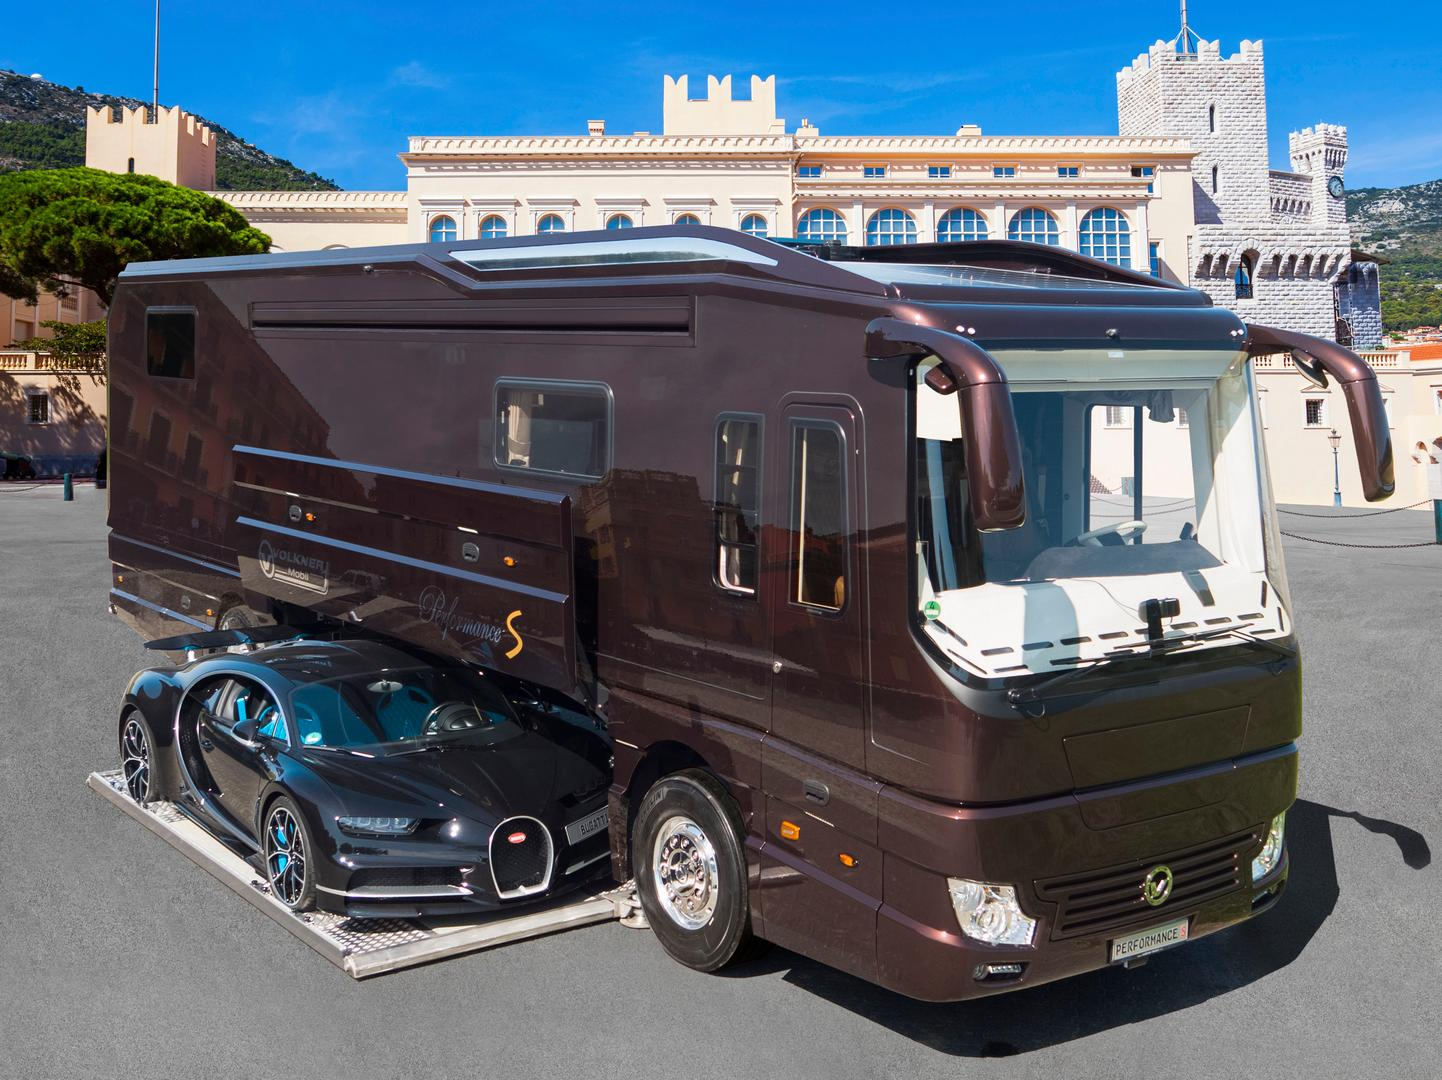 This $4.7 Million Bus Comes with a Bugatti Chiron Inside – Road Yacht